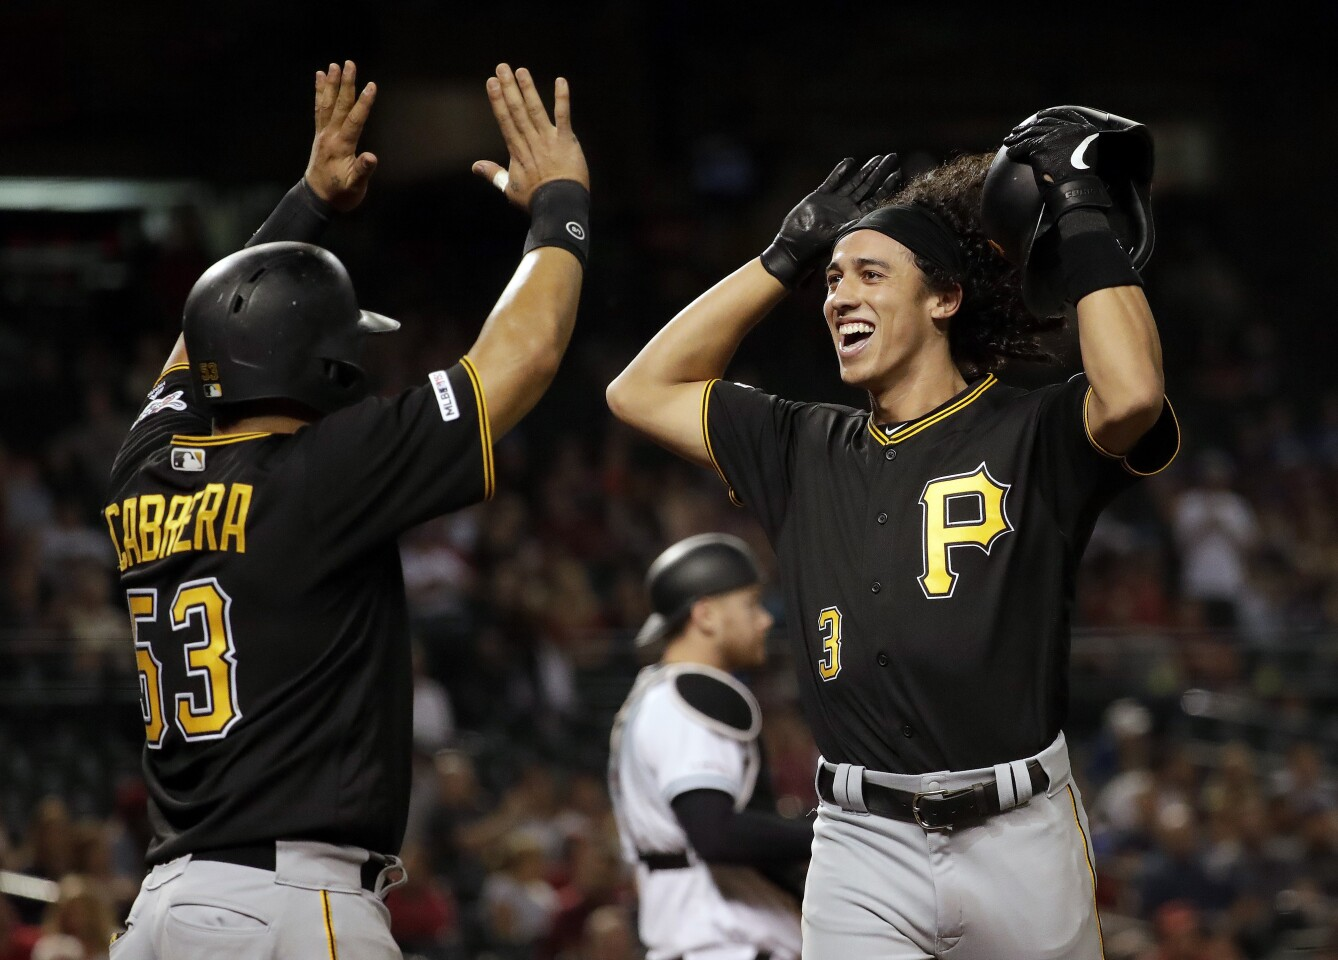 Pittsburgh Pirates' Cole Tucker celebrates his two-run home run with Melky Cabrera (53) during the eighth inning of the team's baseball game against the Arizona Diamondbacks, Tuesday, May 14, 2019, in Phoenix. (AP Photo/Matt York)